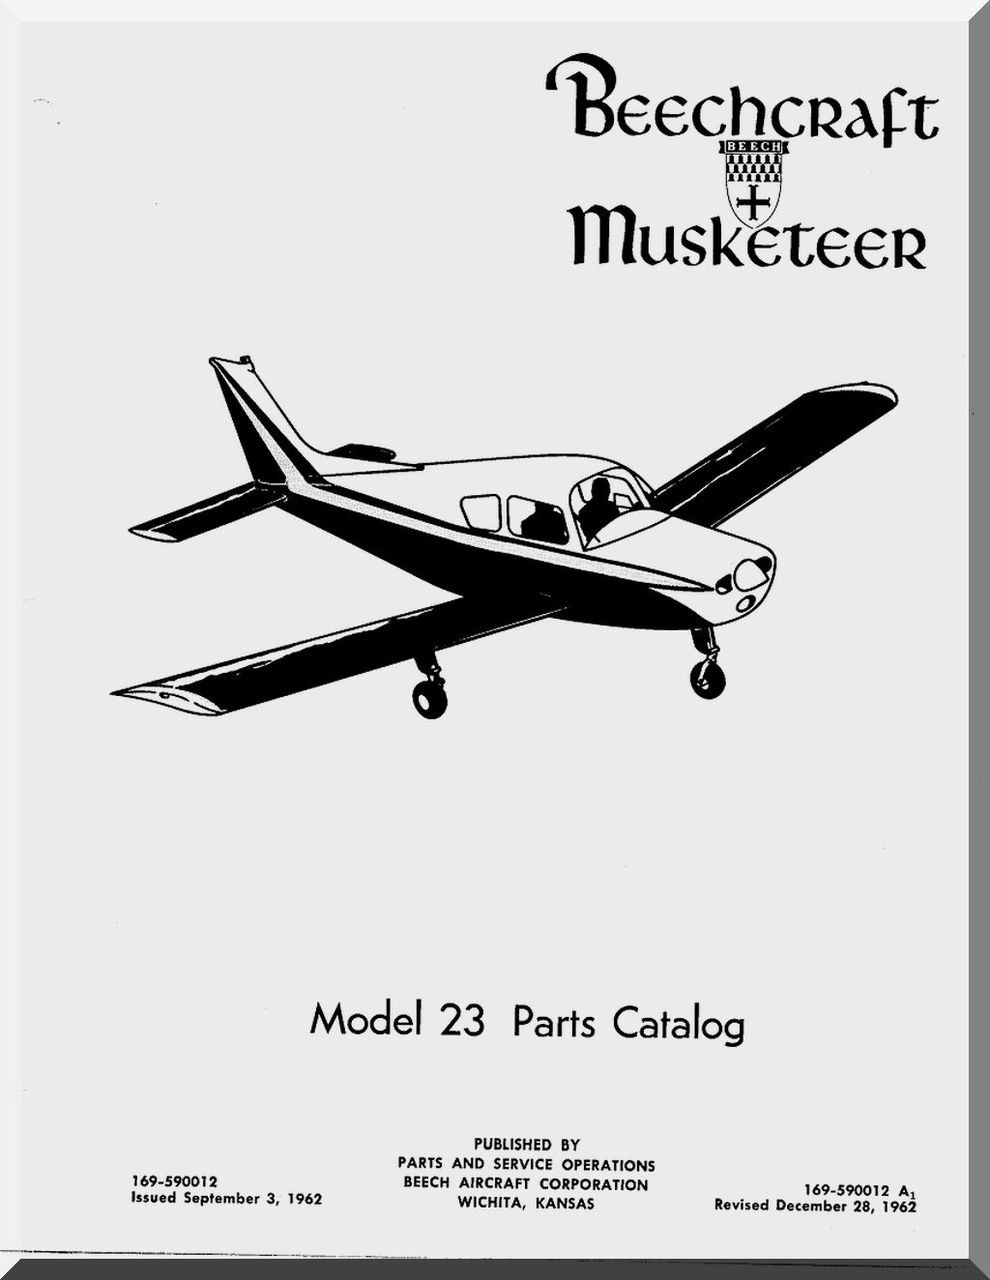 Beechcraft Musketeer 23 Aircraft Parts Catalog Manual